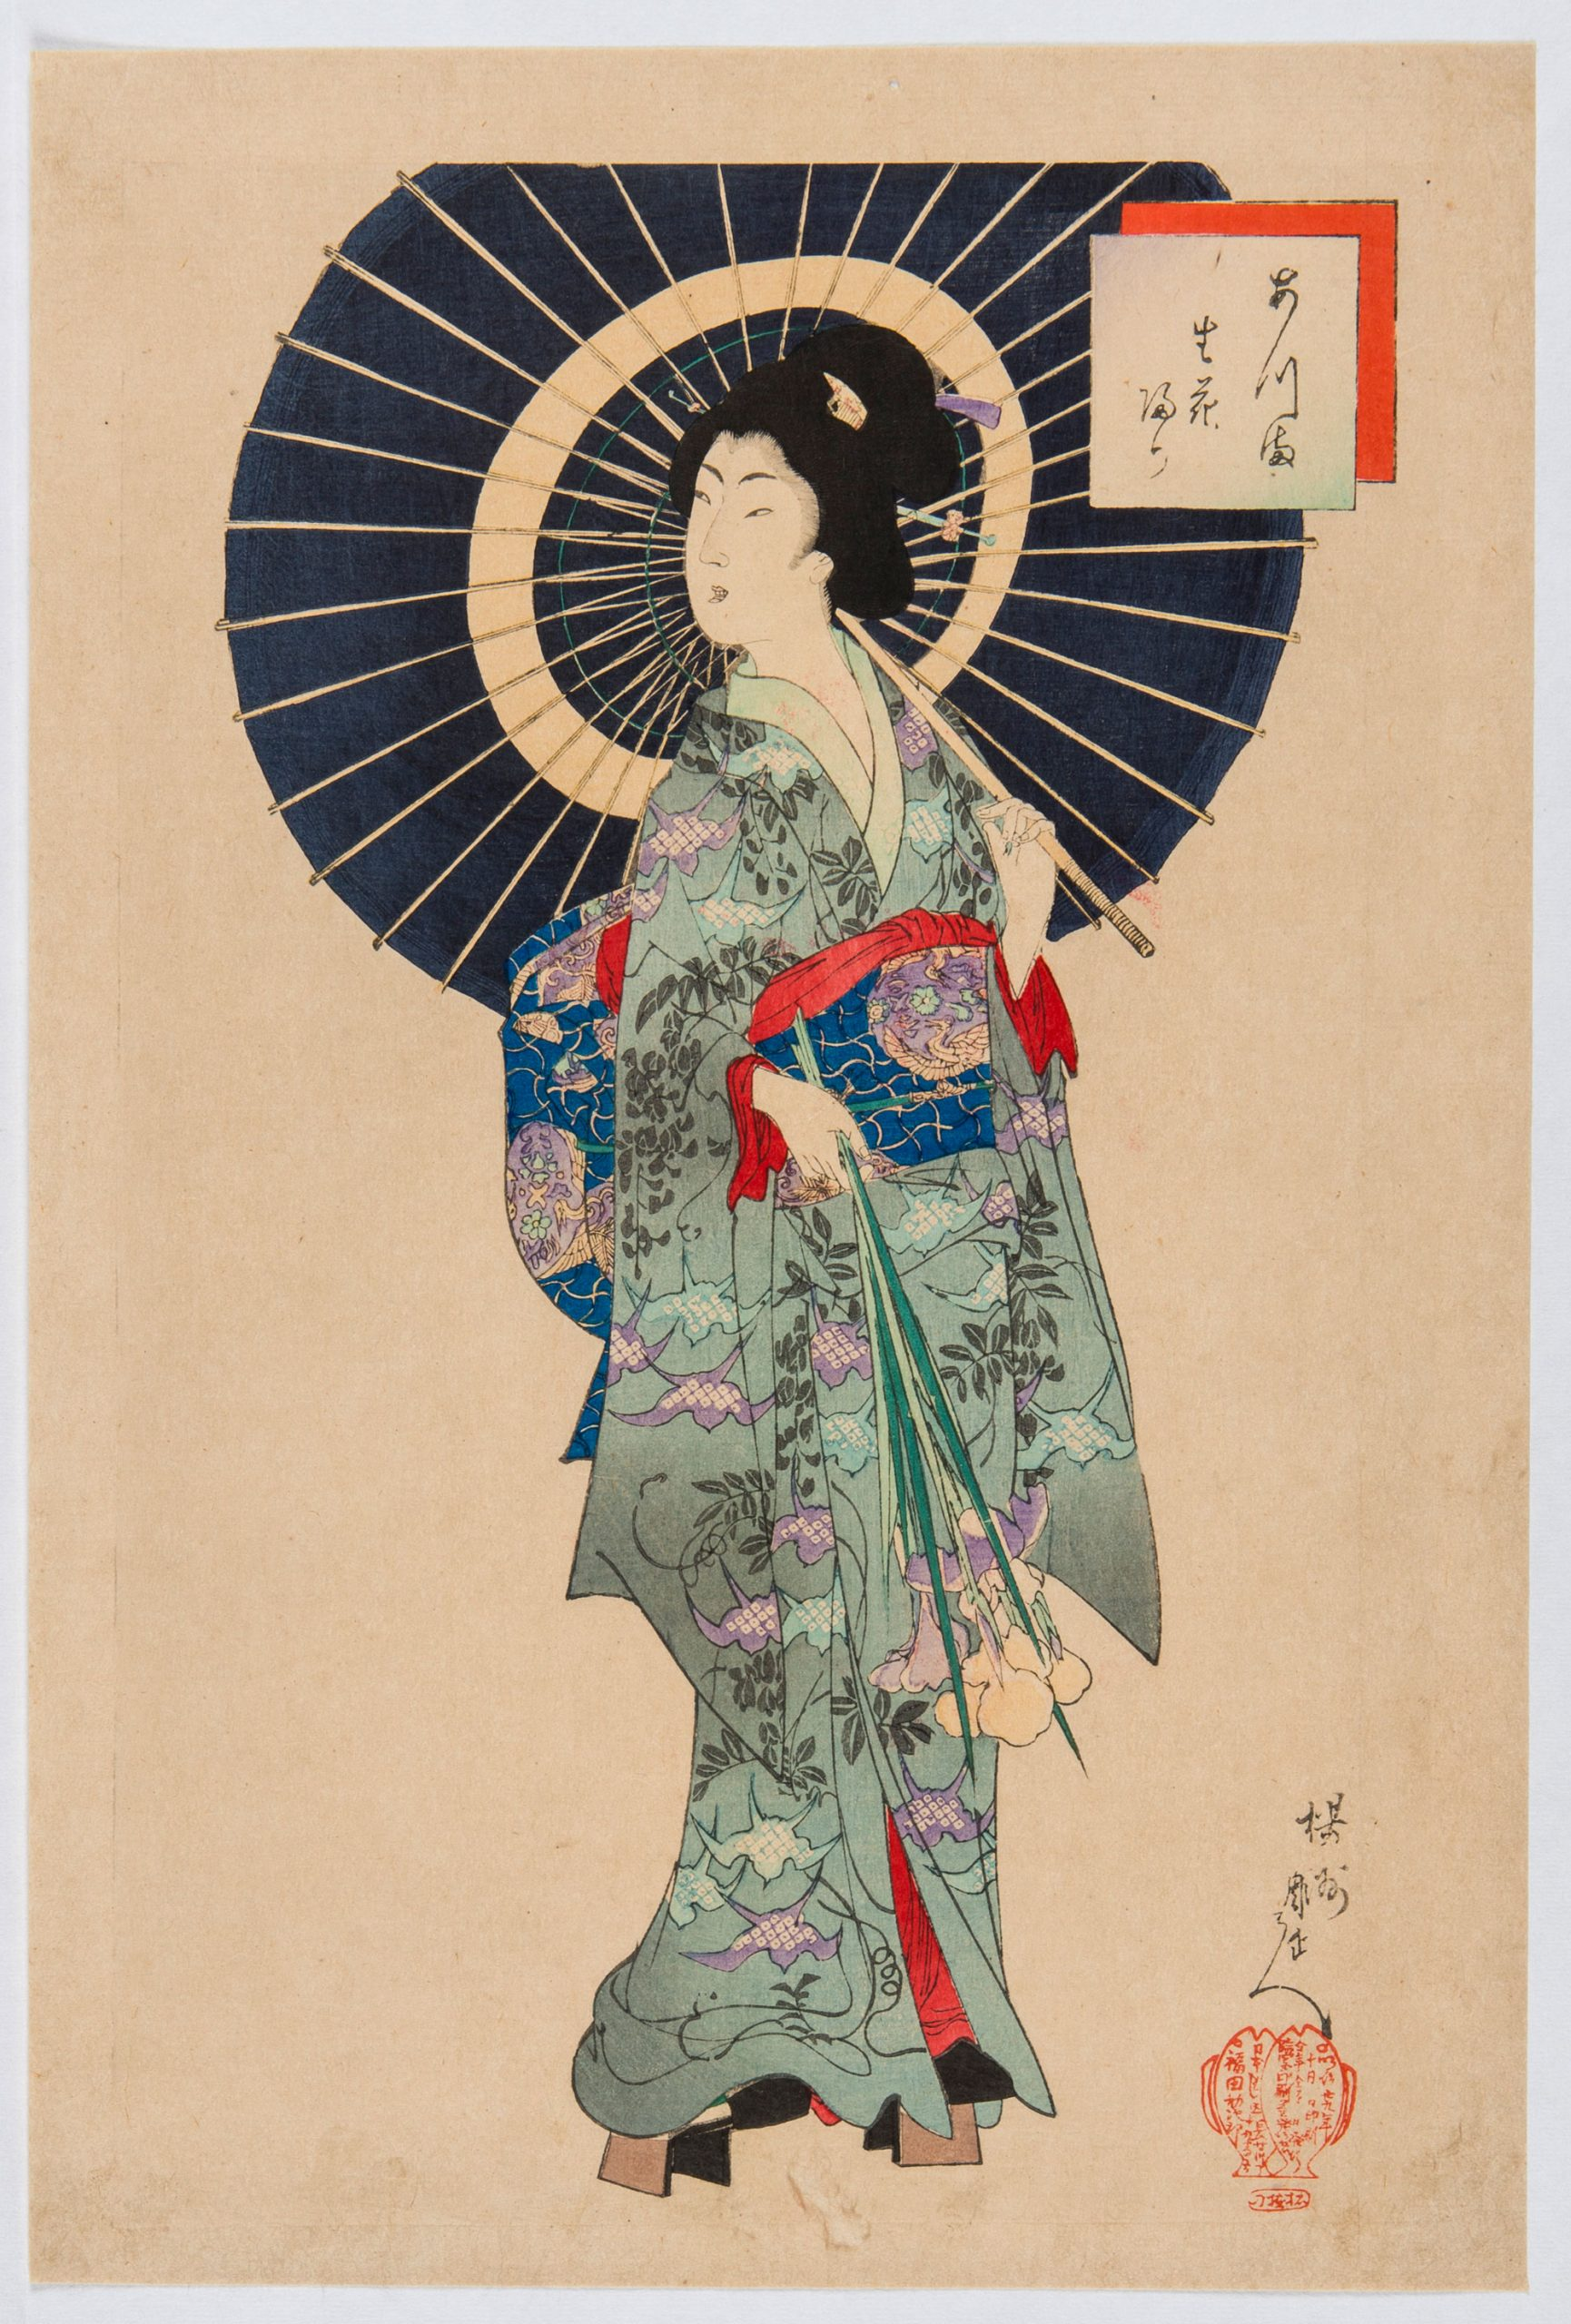 A Japanese woman with an umbrella